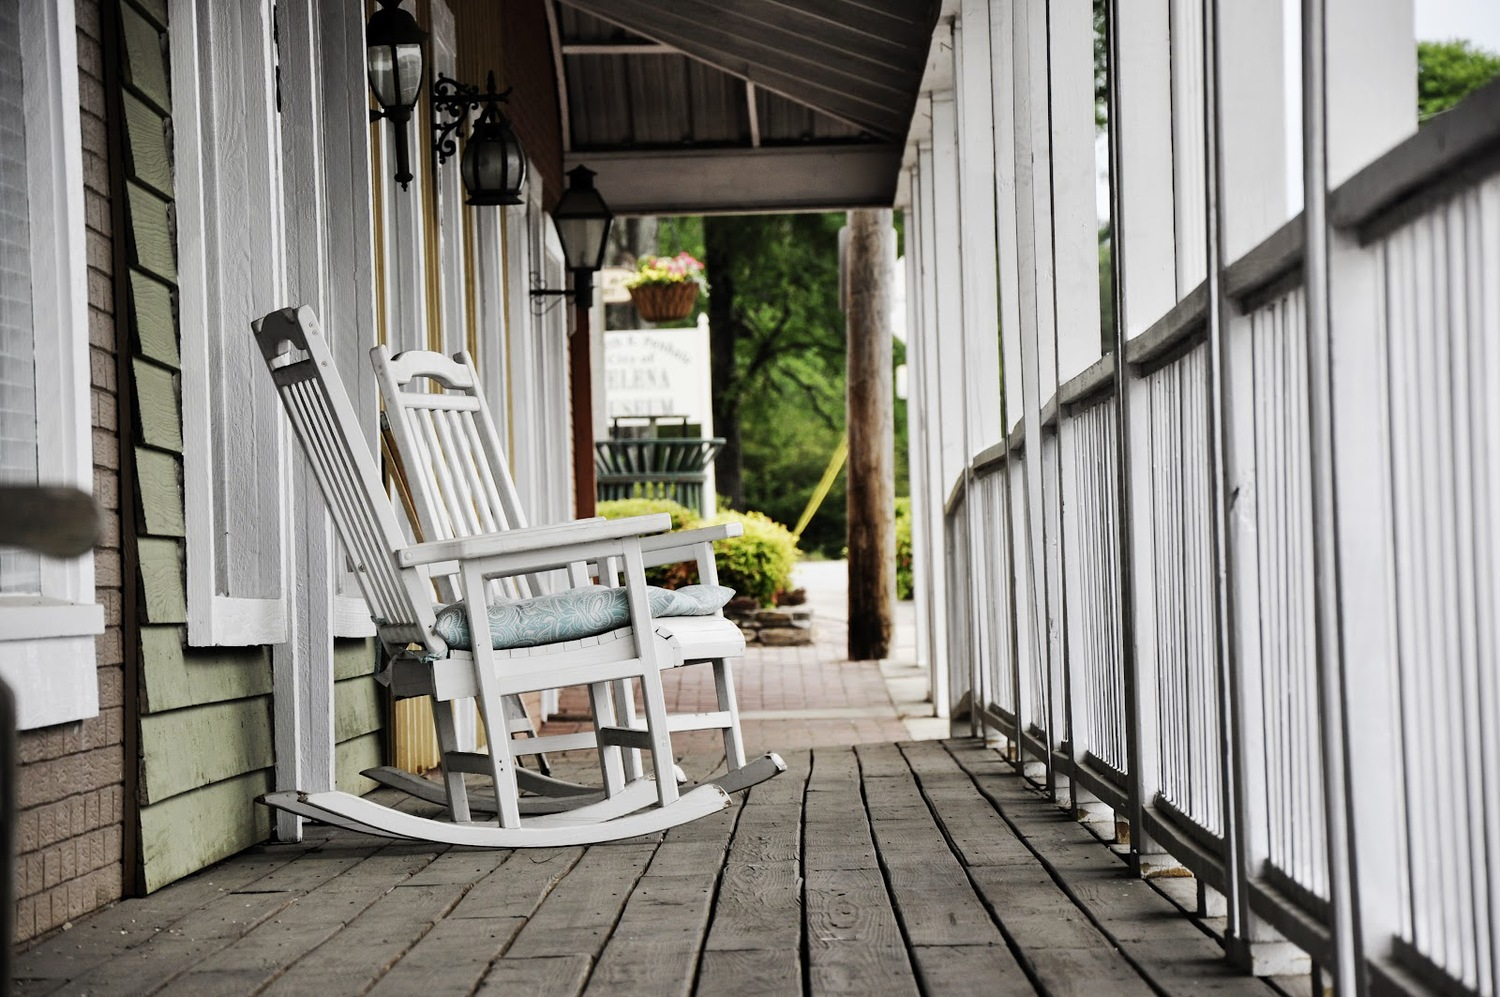 Old Rocking Chair On Porch Furniture Retro Terrace